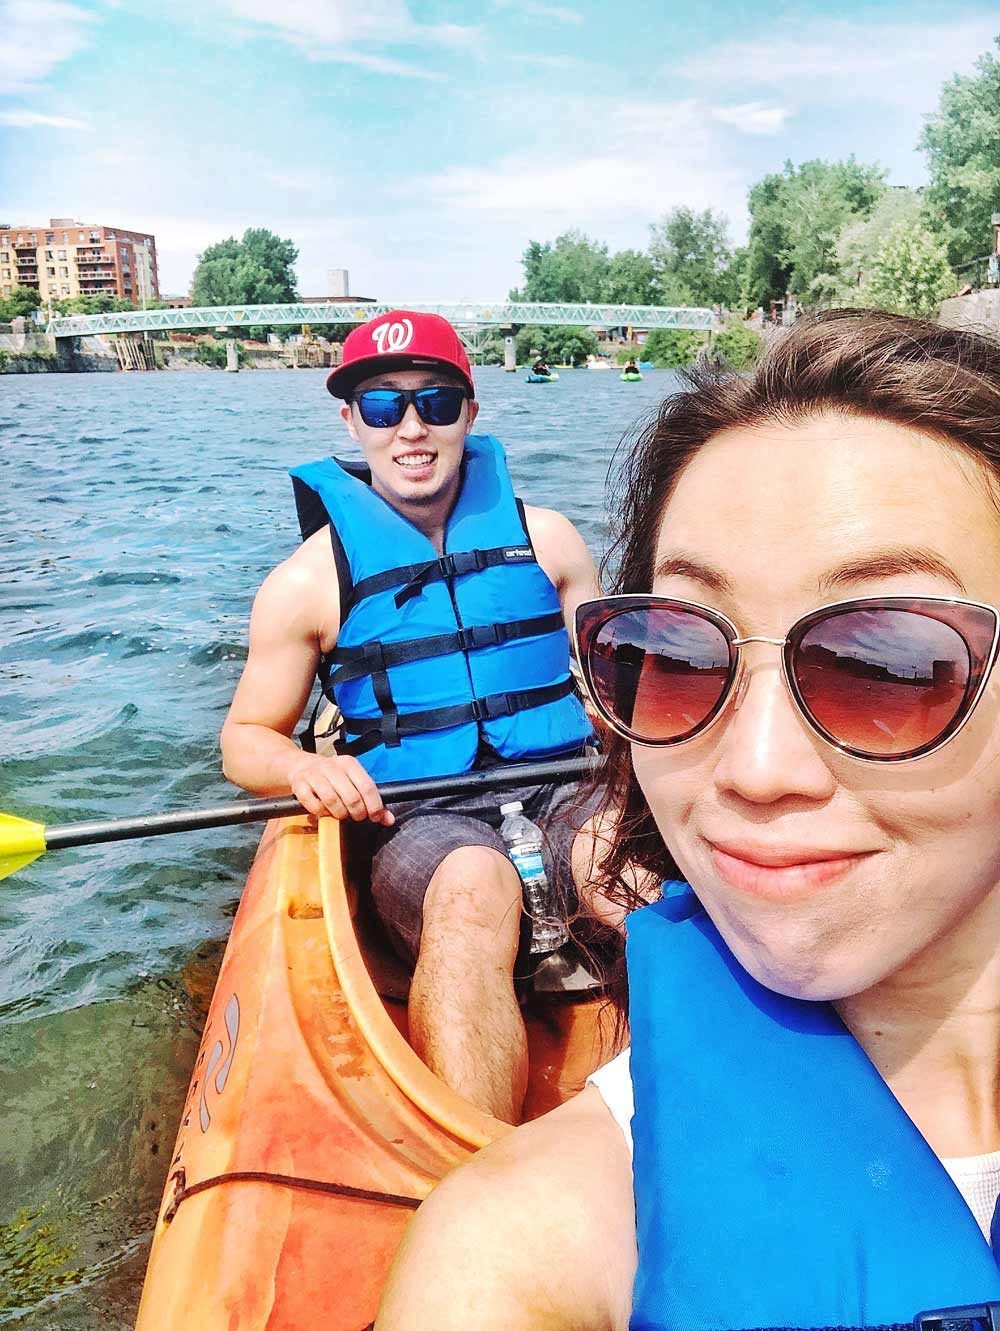 2 Days in Montreal - A Guide to What to Do and Where to Eat - H2O Adventures Lachine Canal Kayak